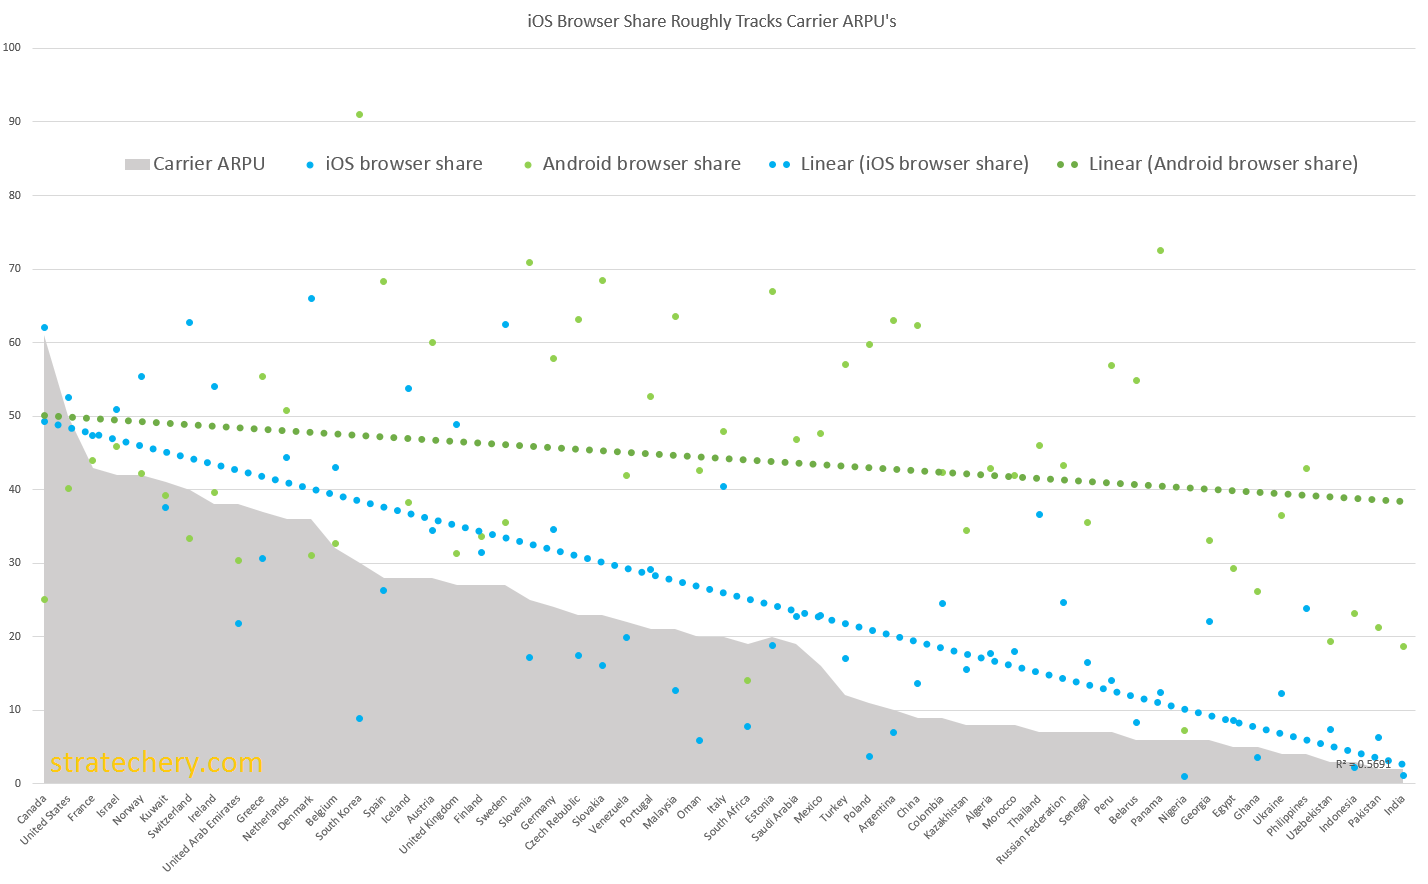 iOS Browser Share Roughly Tracks Carrier ARPU -- Click for larger size